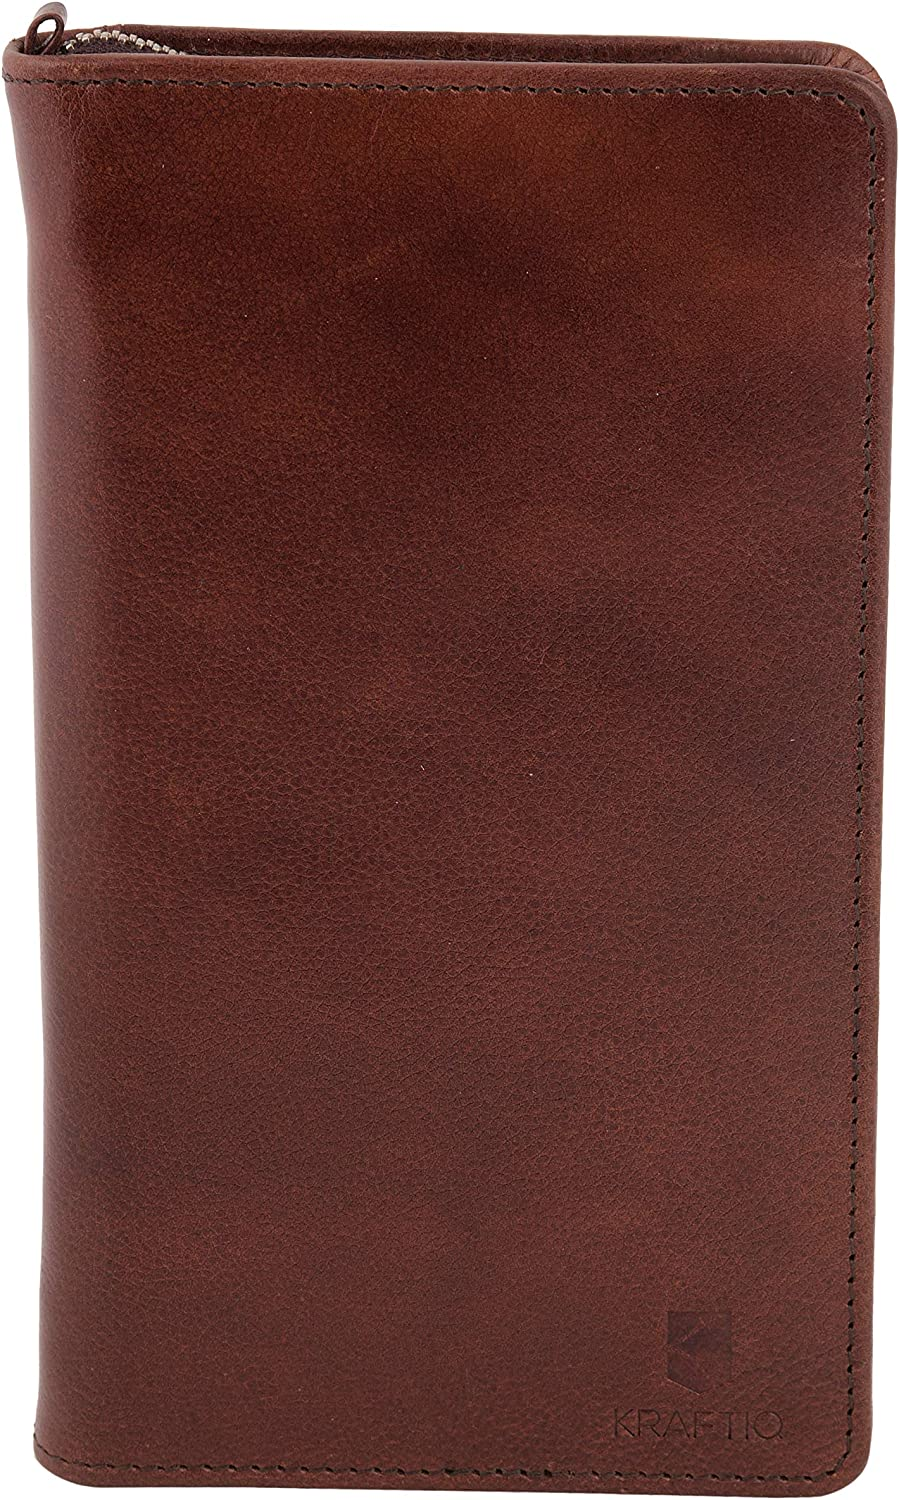 SIMON- RFID Secured, Vegetable Tanned Brown Genuine Leather Travel Wallet